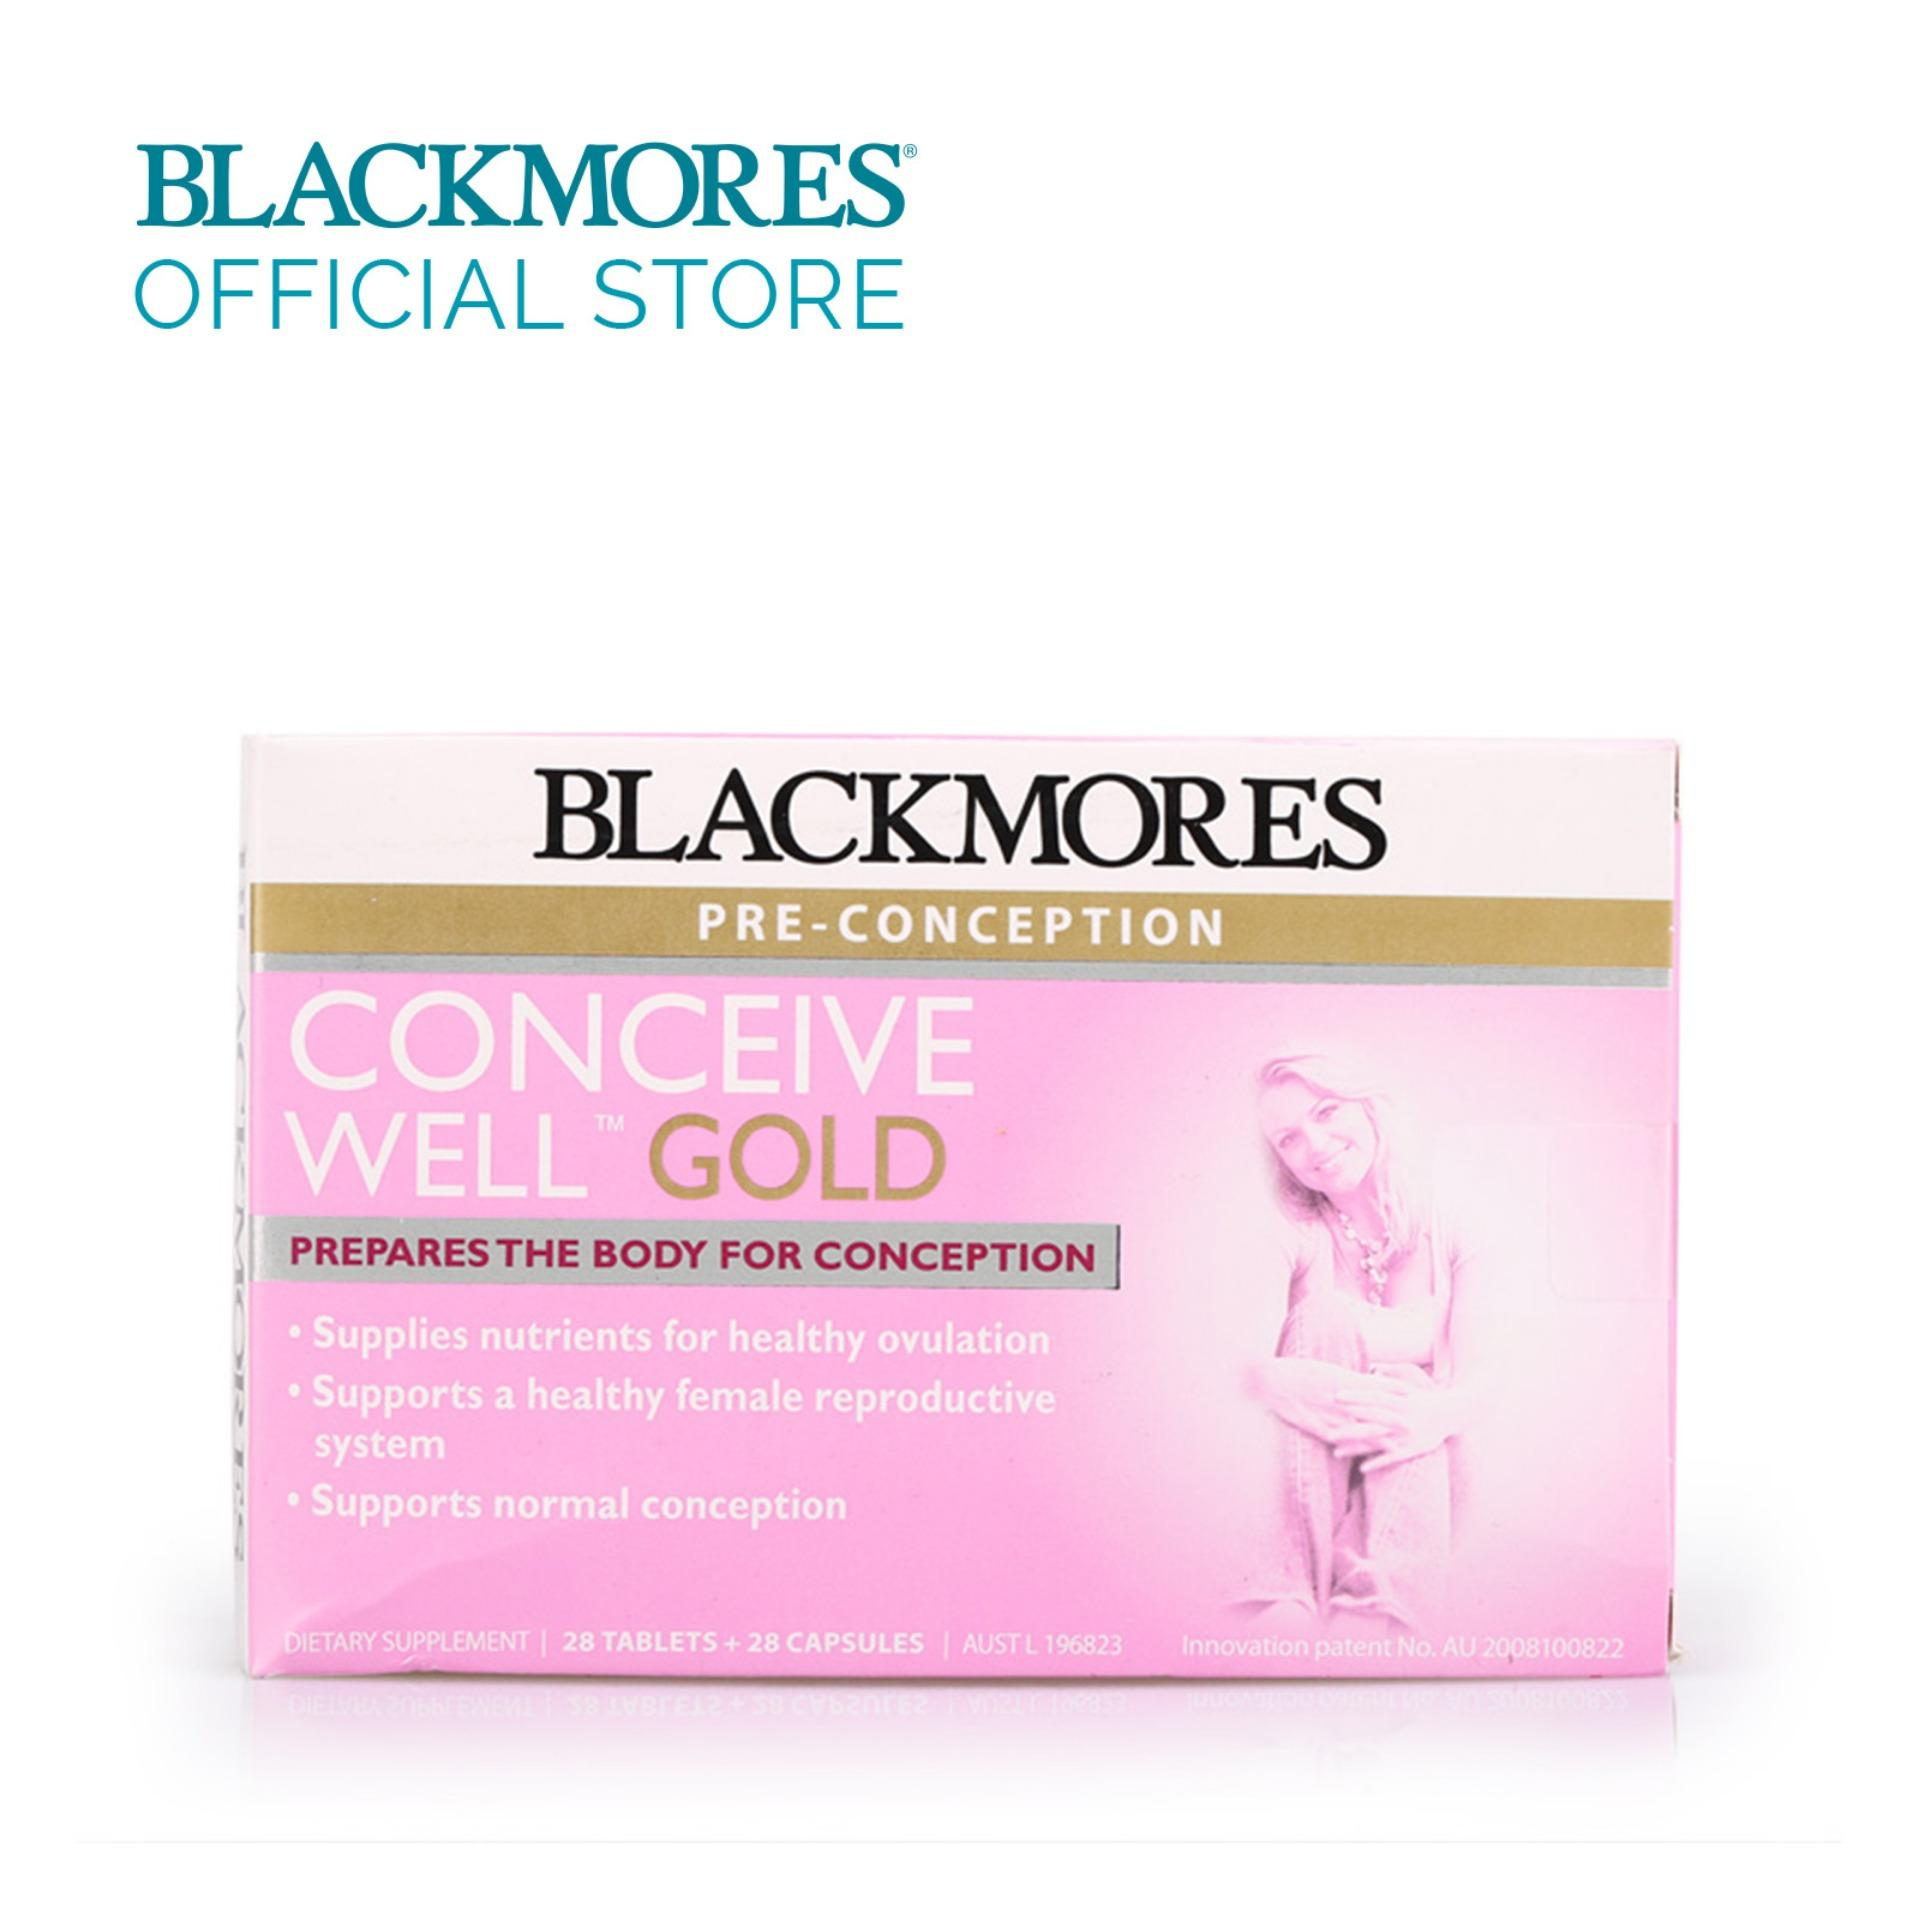 Blackmores Conceive Well Gold 28s+28s 56tabs By Blackmores Official Store.